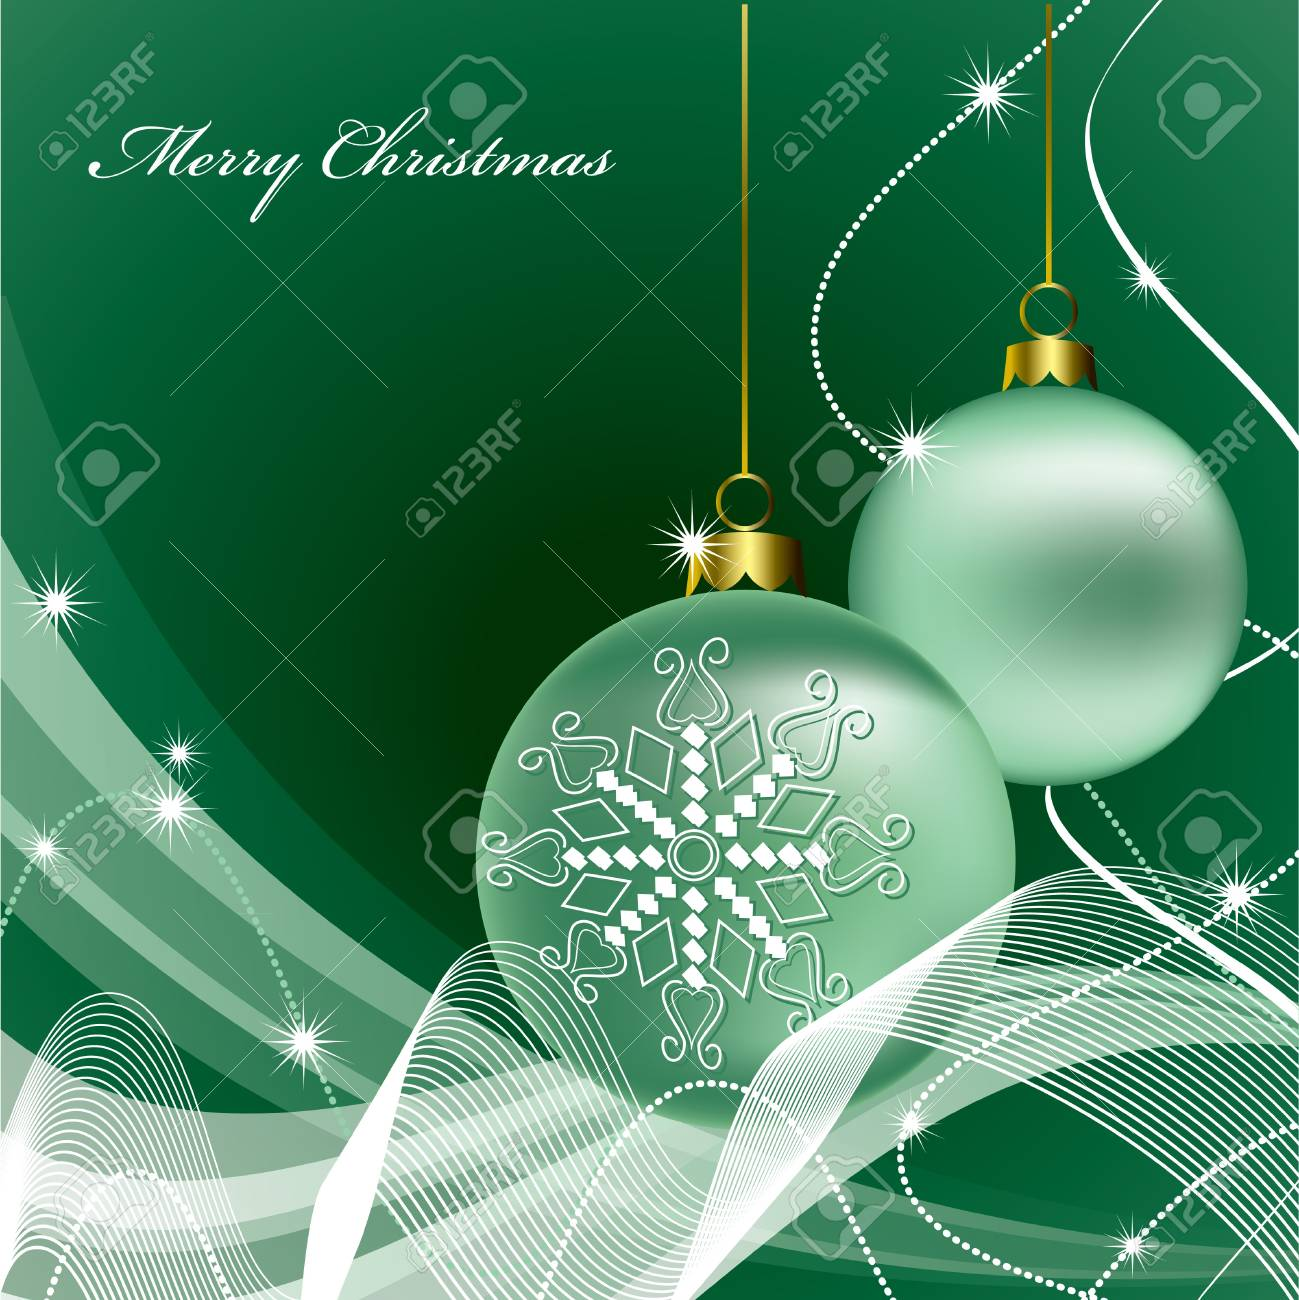 Christmas Background Stock Vector - 16453334